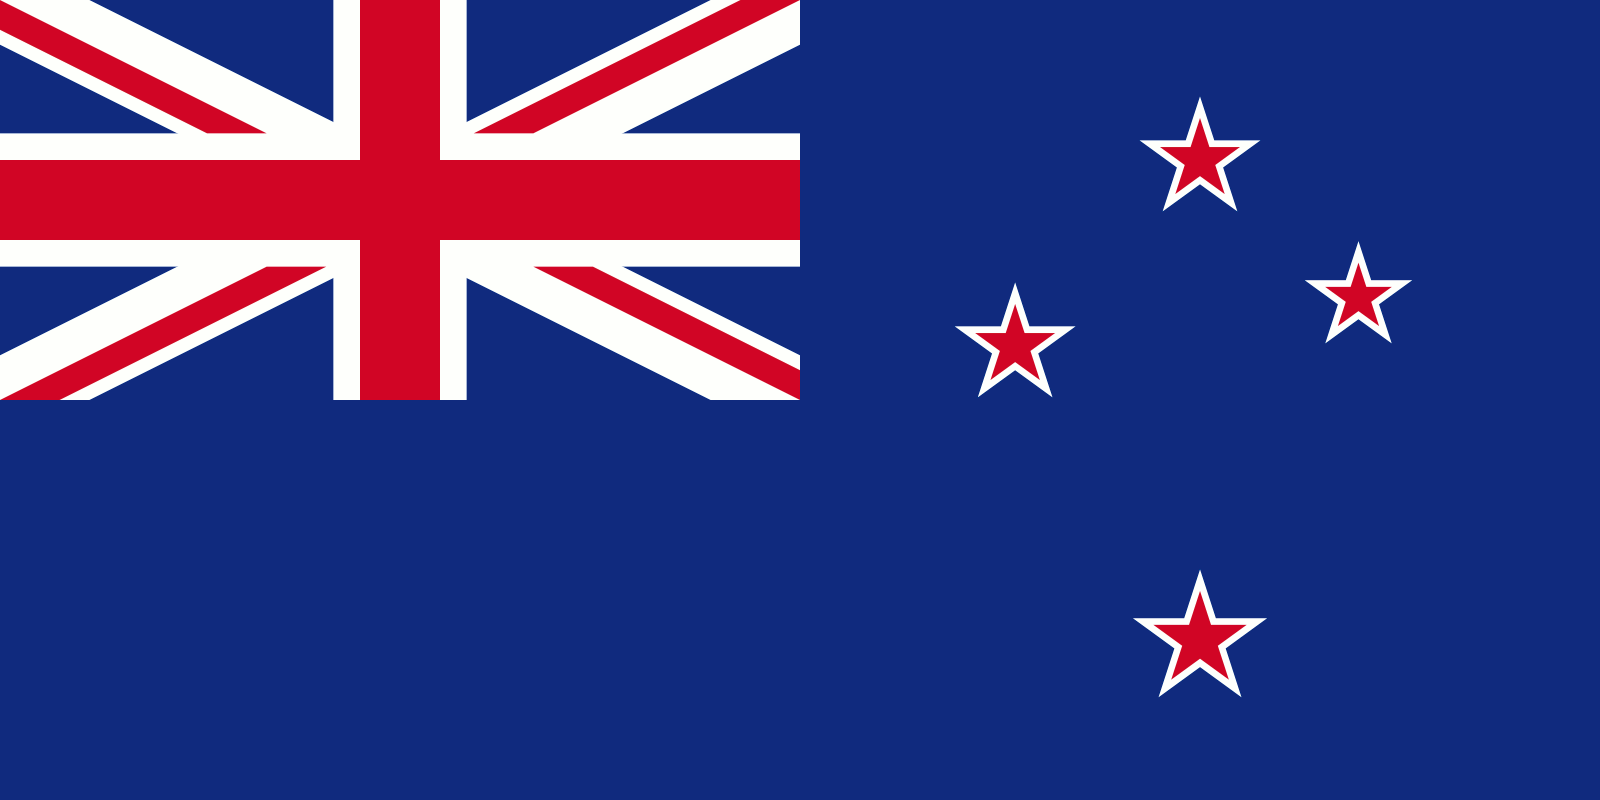 nz_flag.png